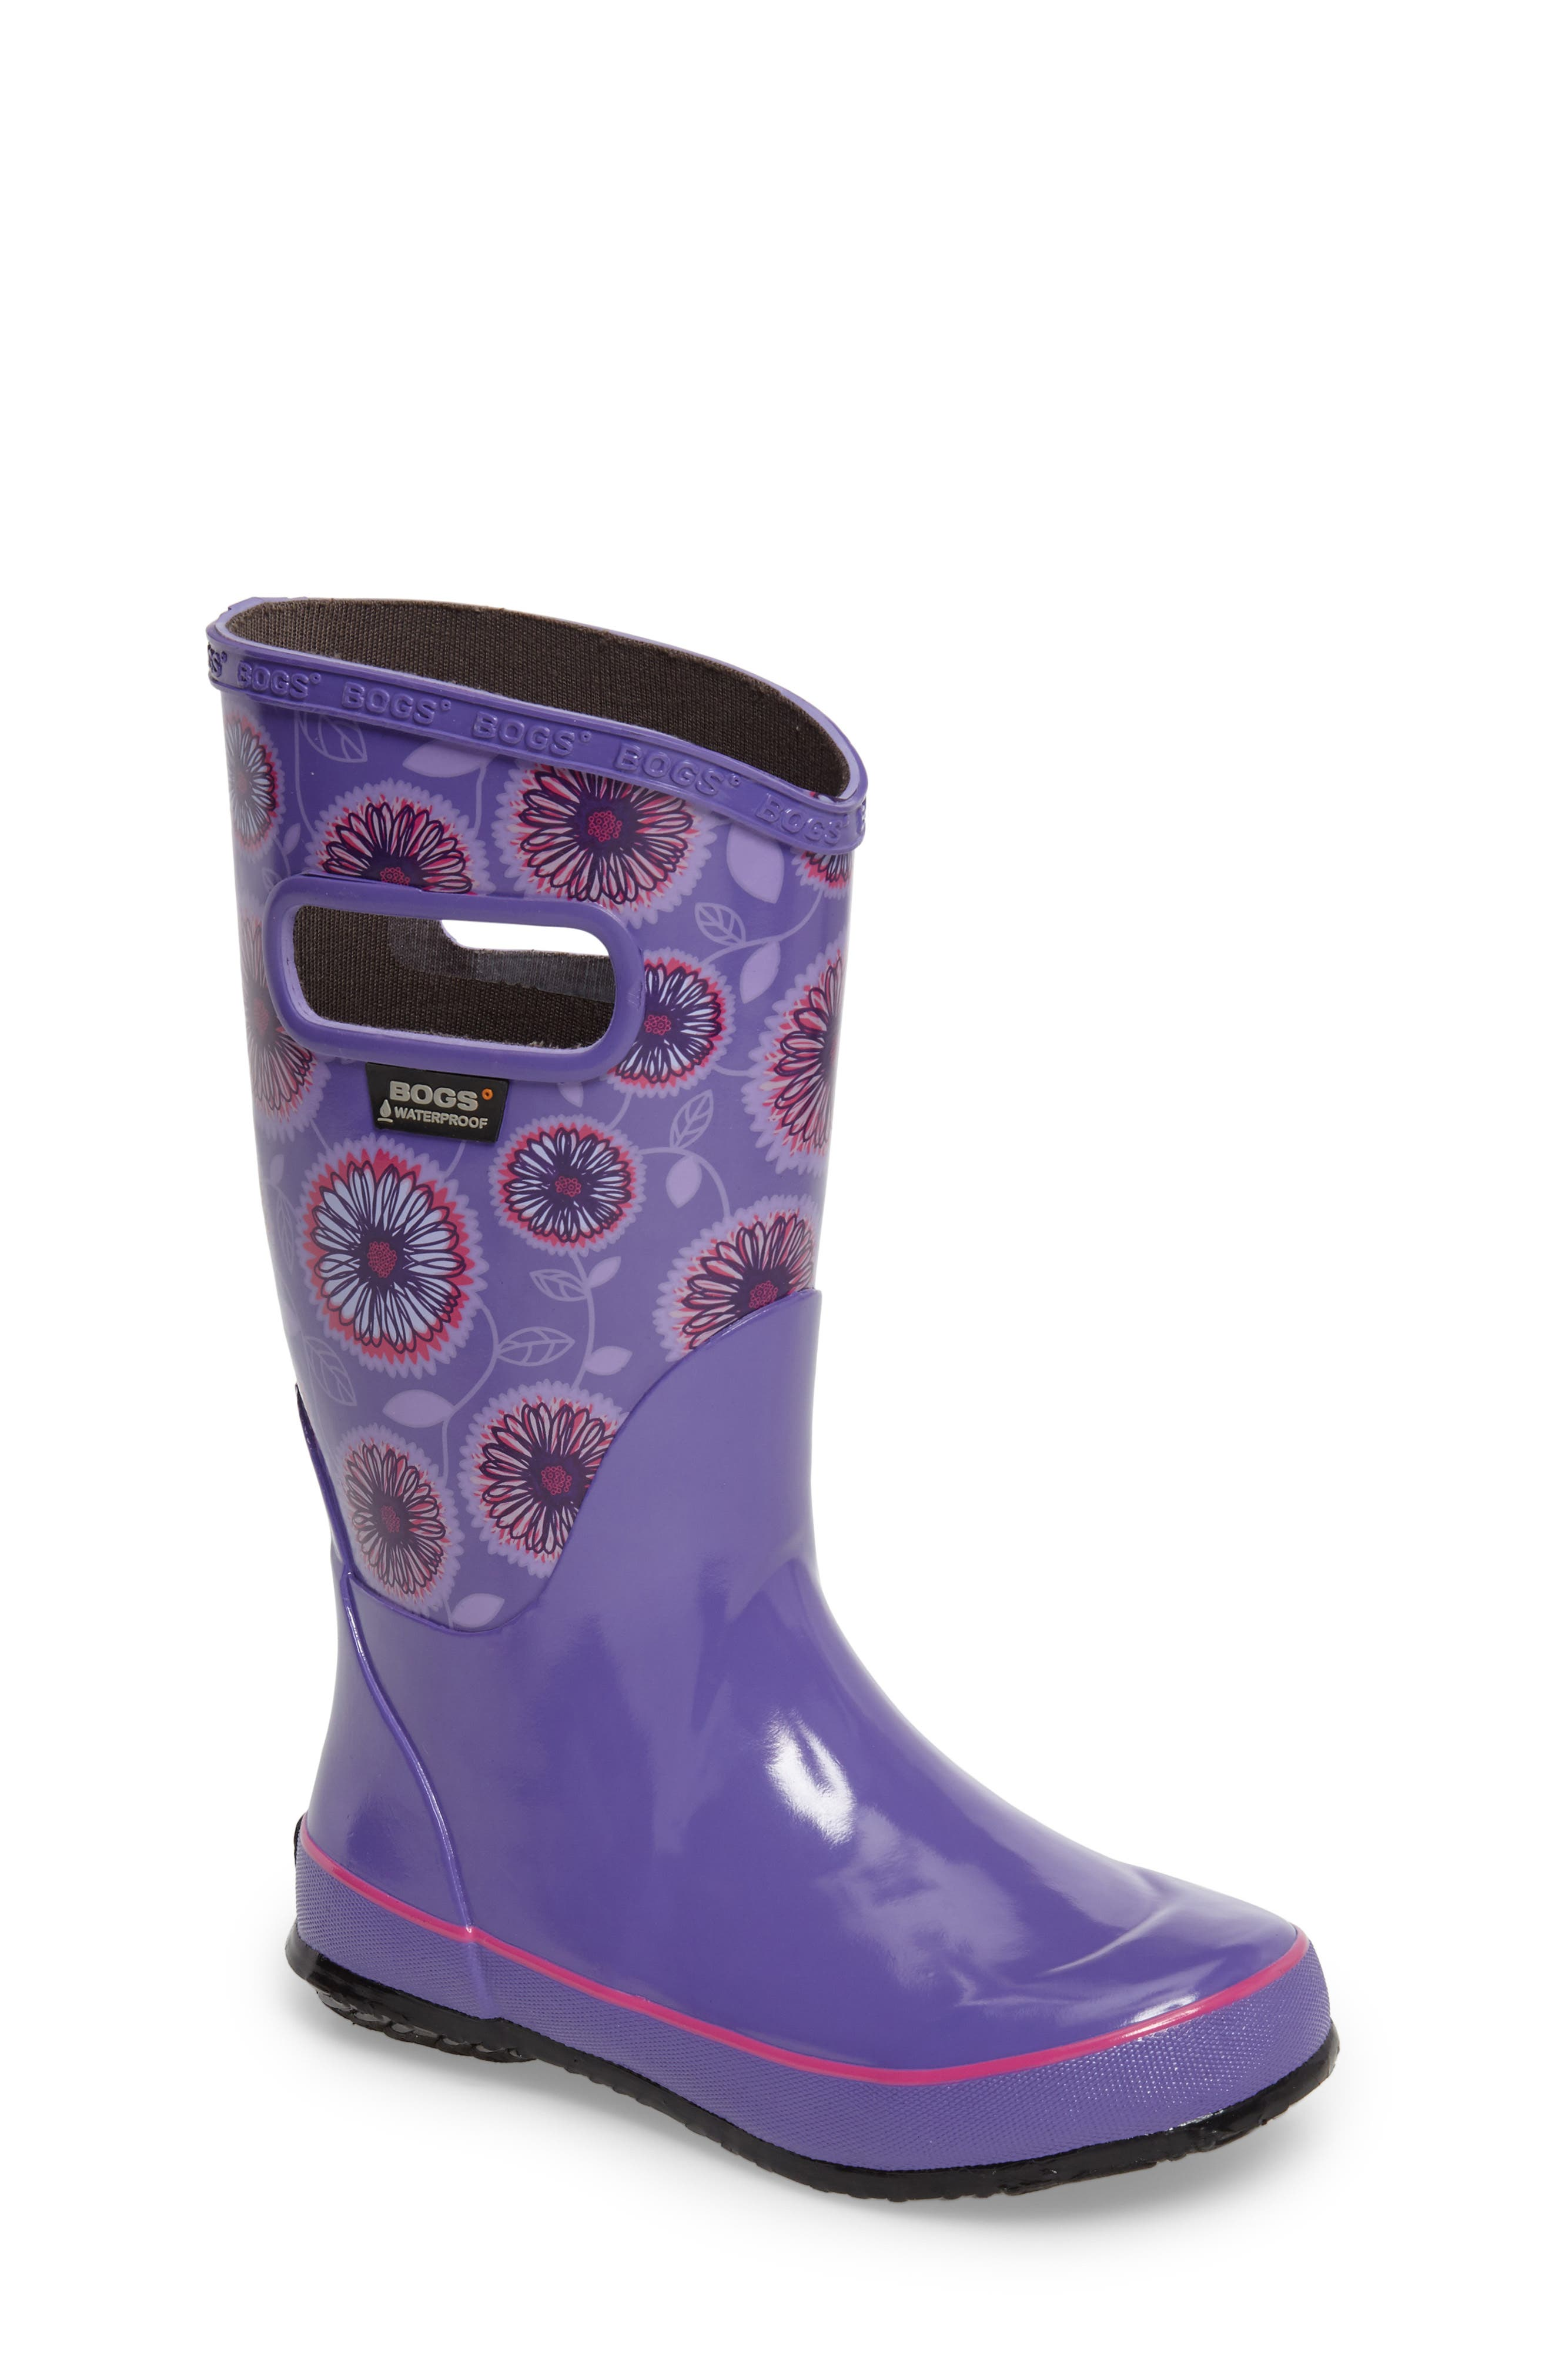 Bogs Wildflowers Rubber Rain Boot (Toddler, Little Kid & Big Kid)